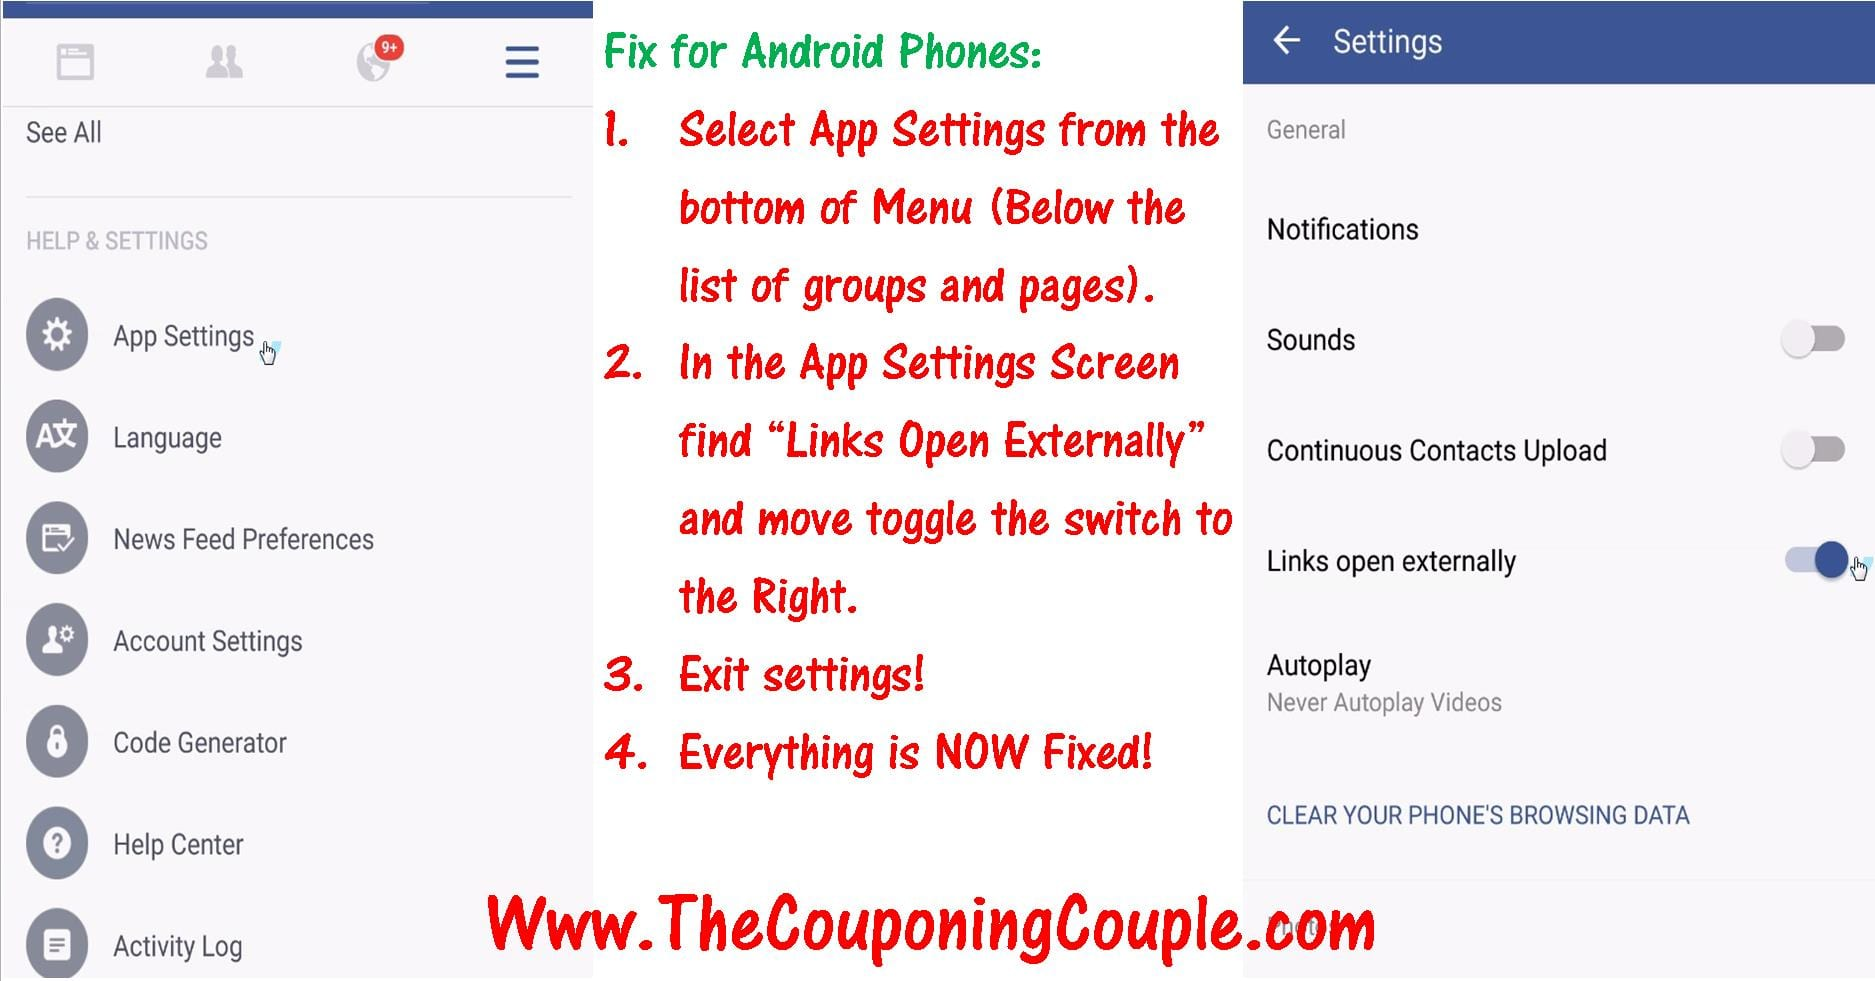 How to Fix Mobile Coupon Printing Problems on your Android Device